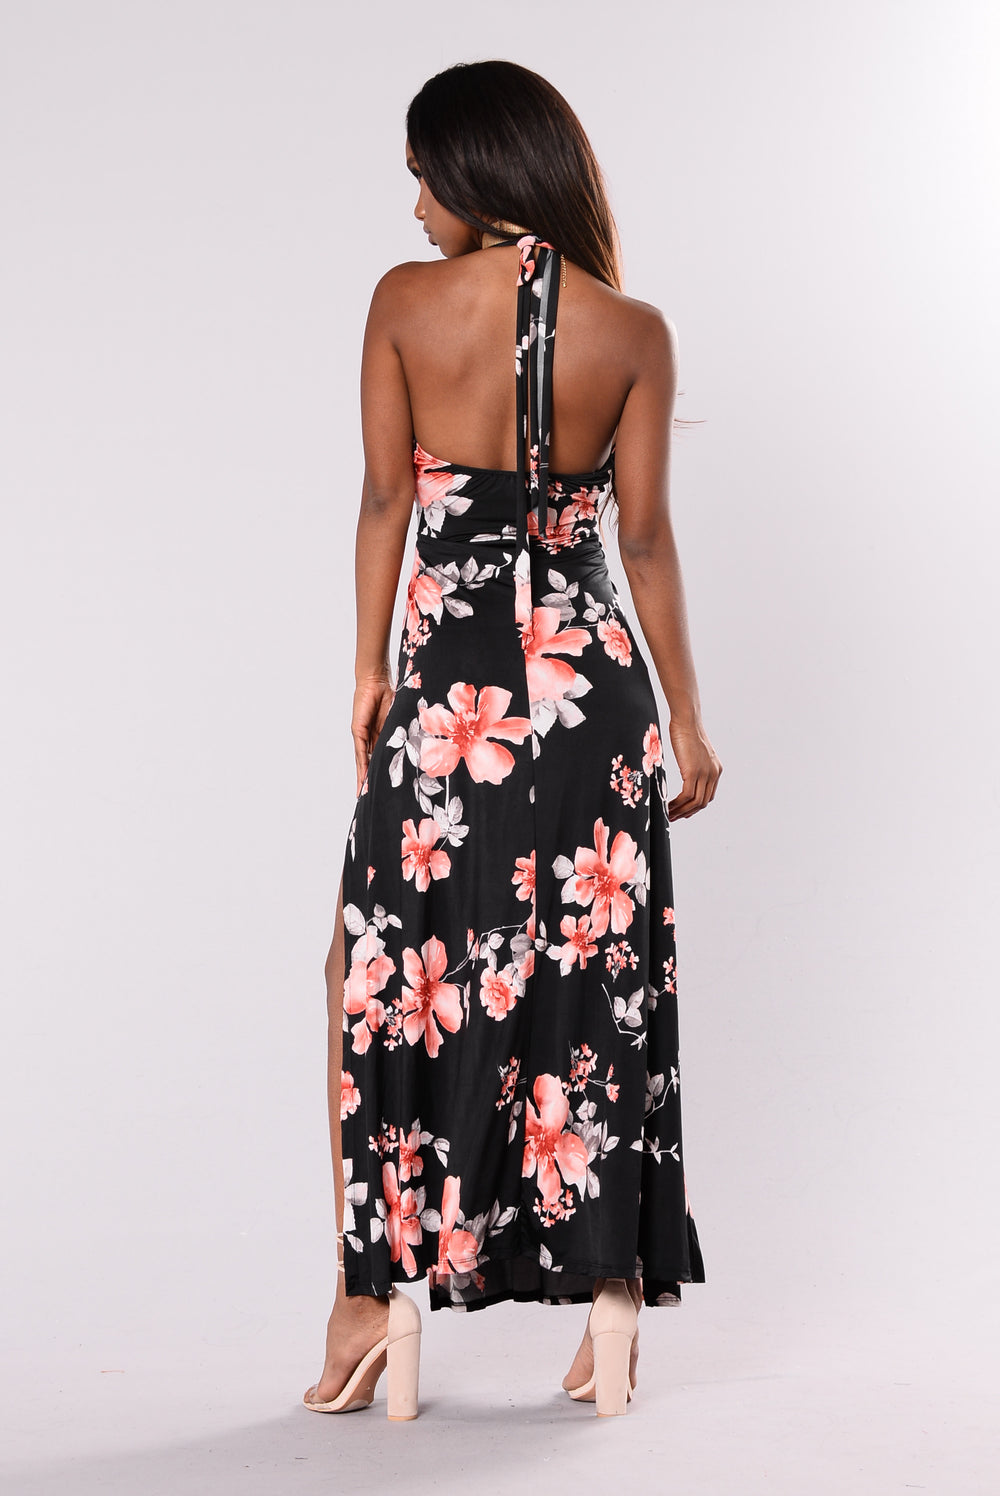 Oahu Nights Dress - Black